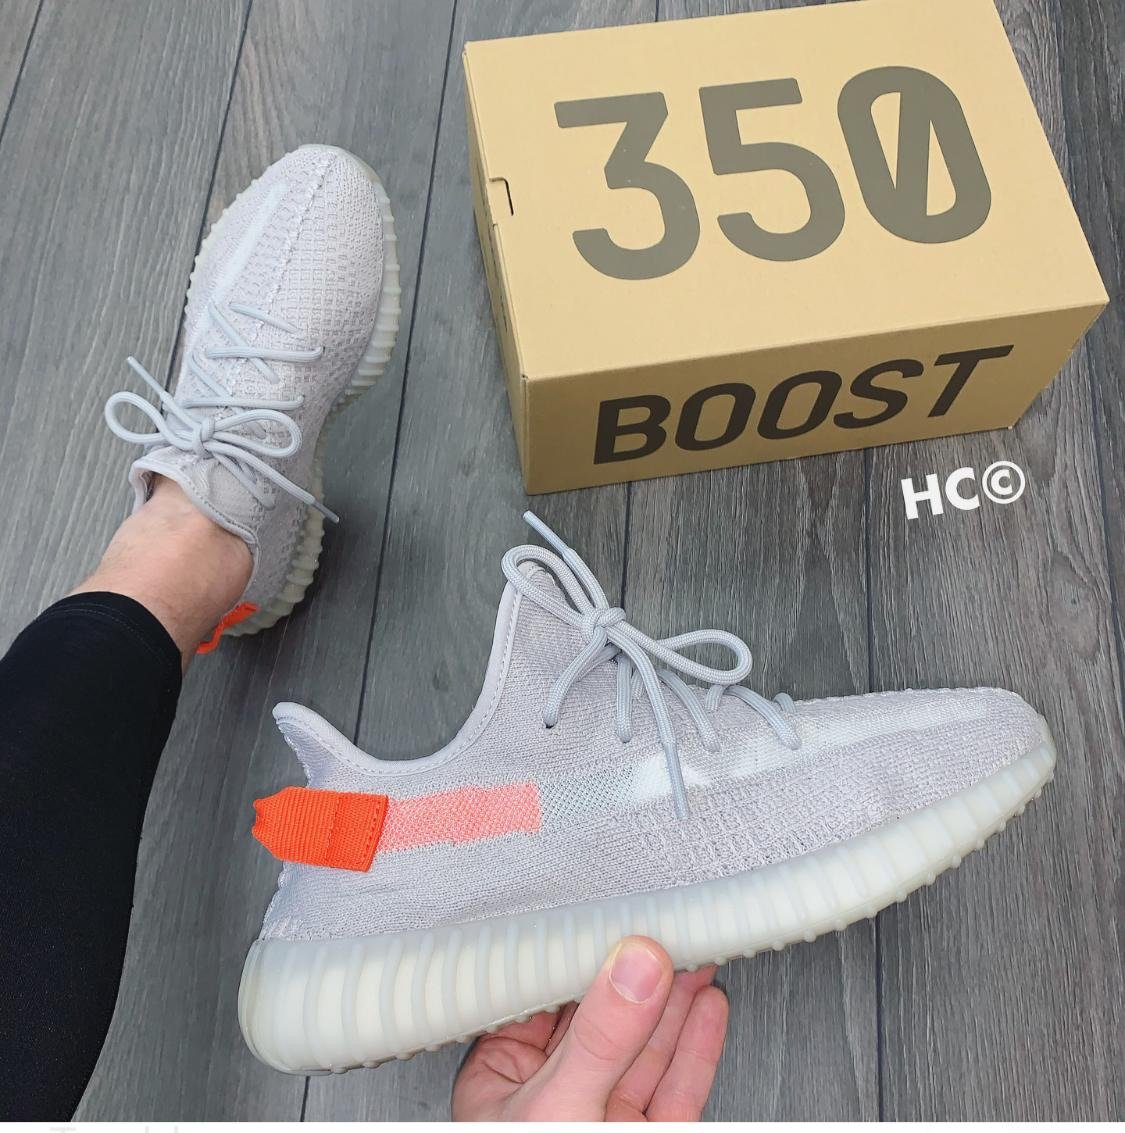 Image of Adidas Yeezy 350 Boost V2 gym shoes